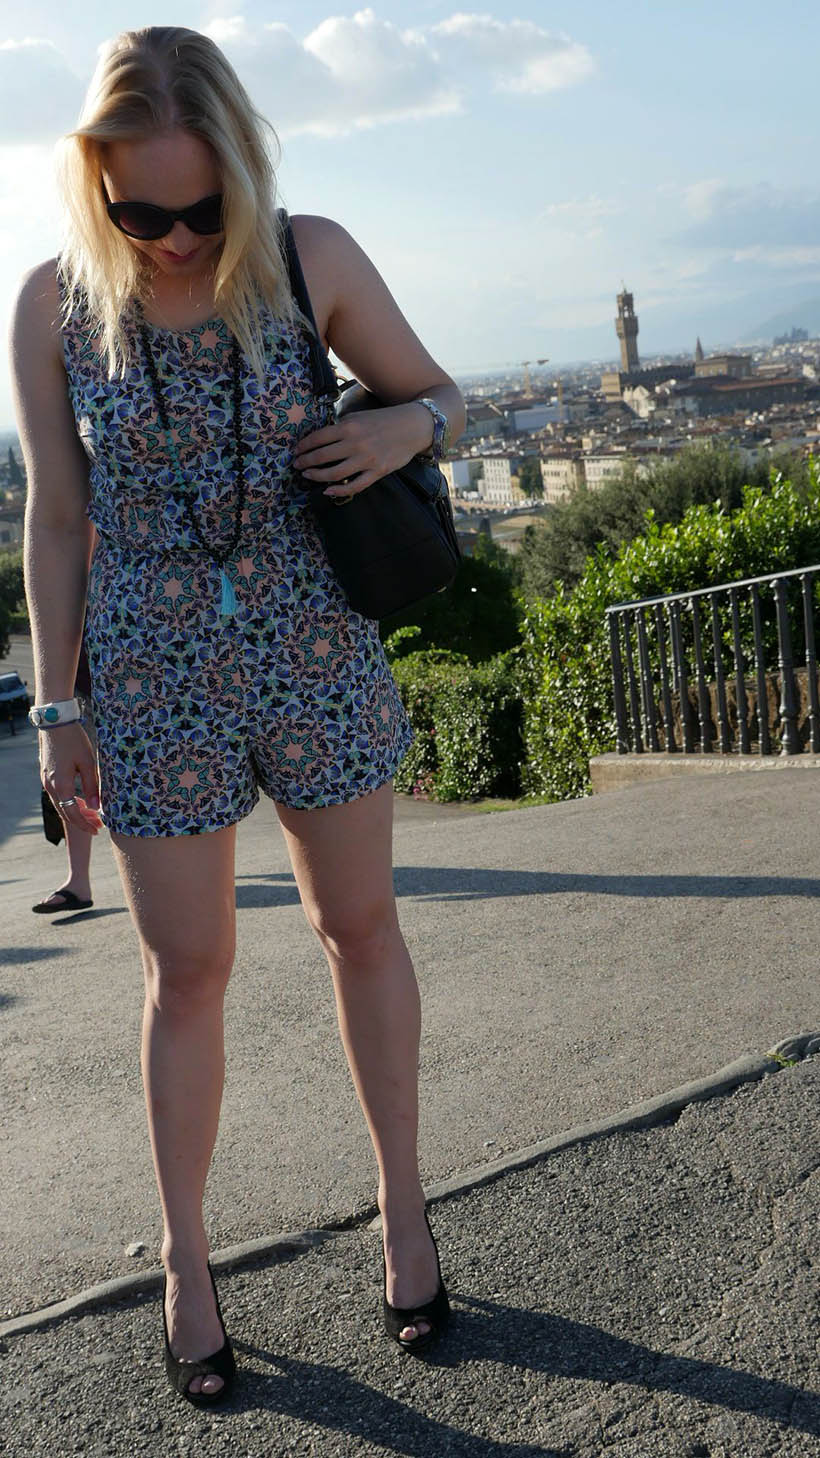 free-as-a-butterfly-outfit-fashion-ootd-blog-sarandipity-playsuit-firenze-italia-italy-moda-ilovefashionbloggers-1